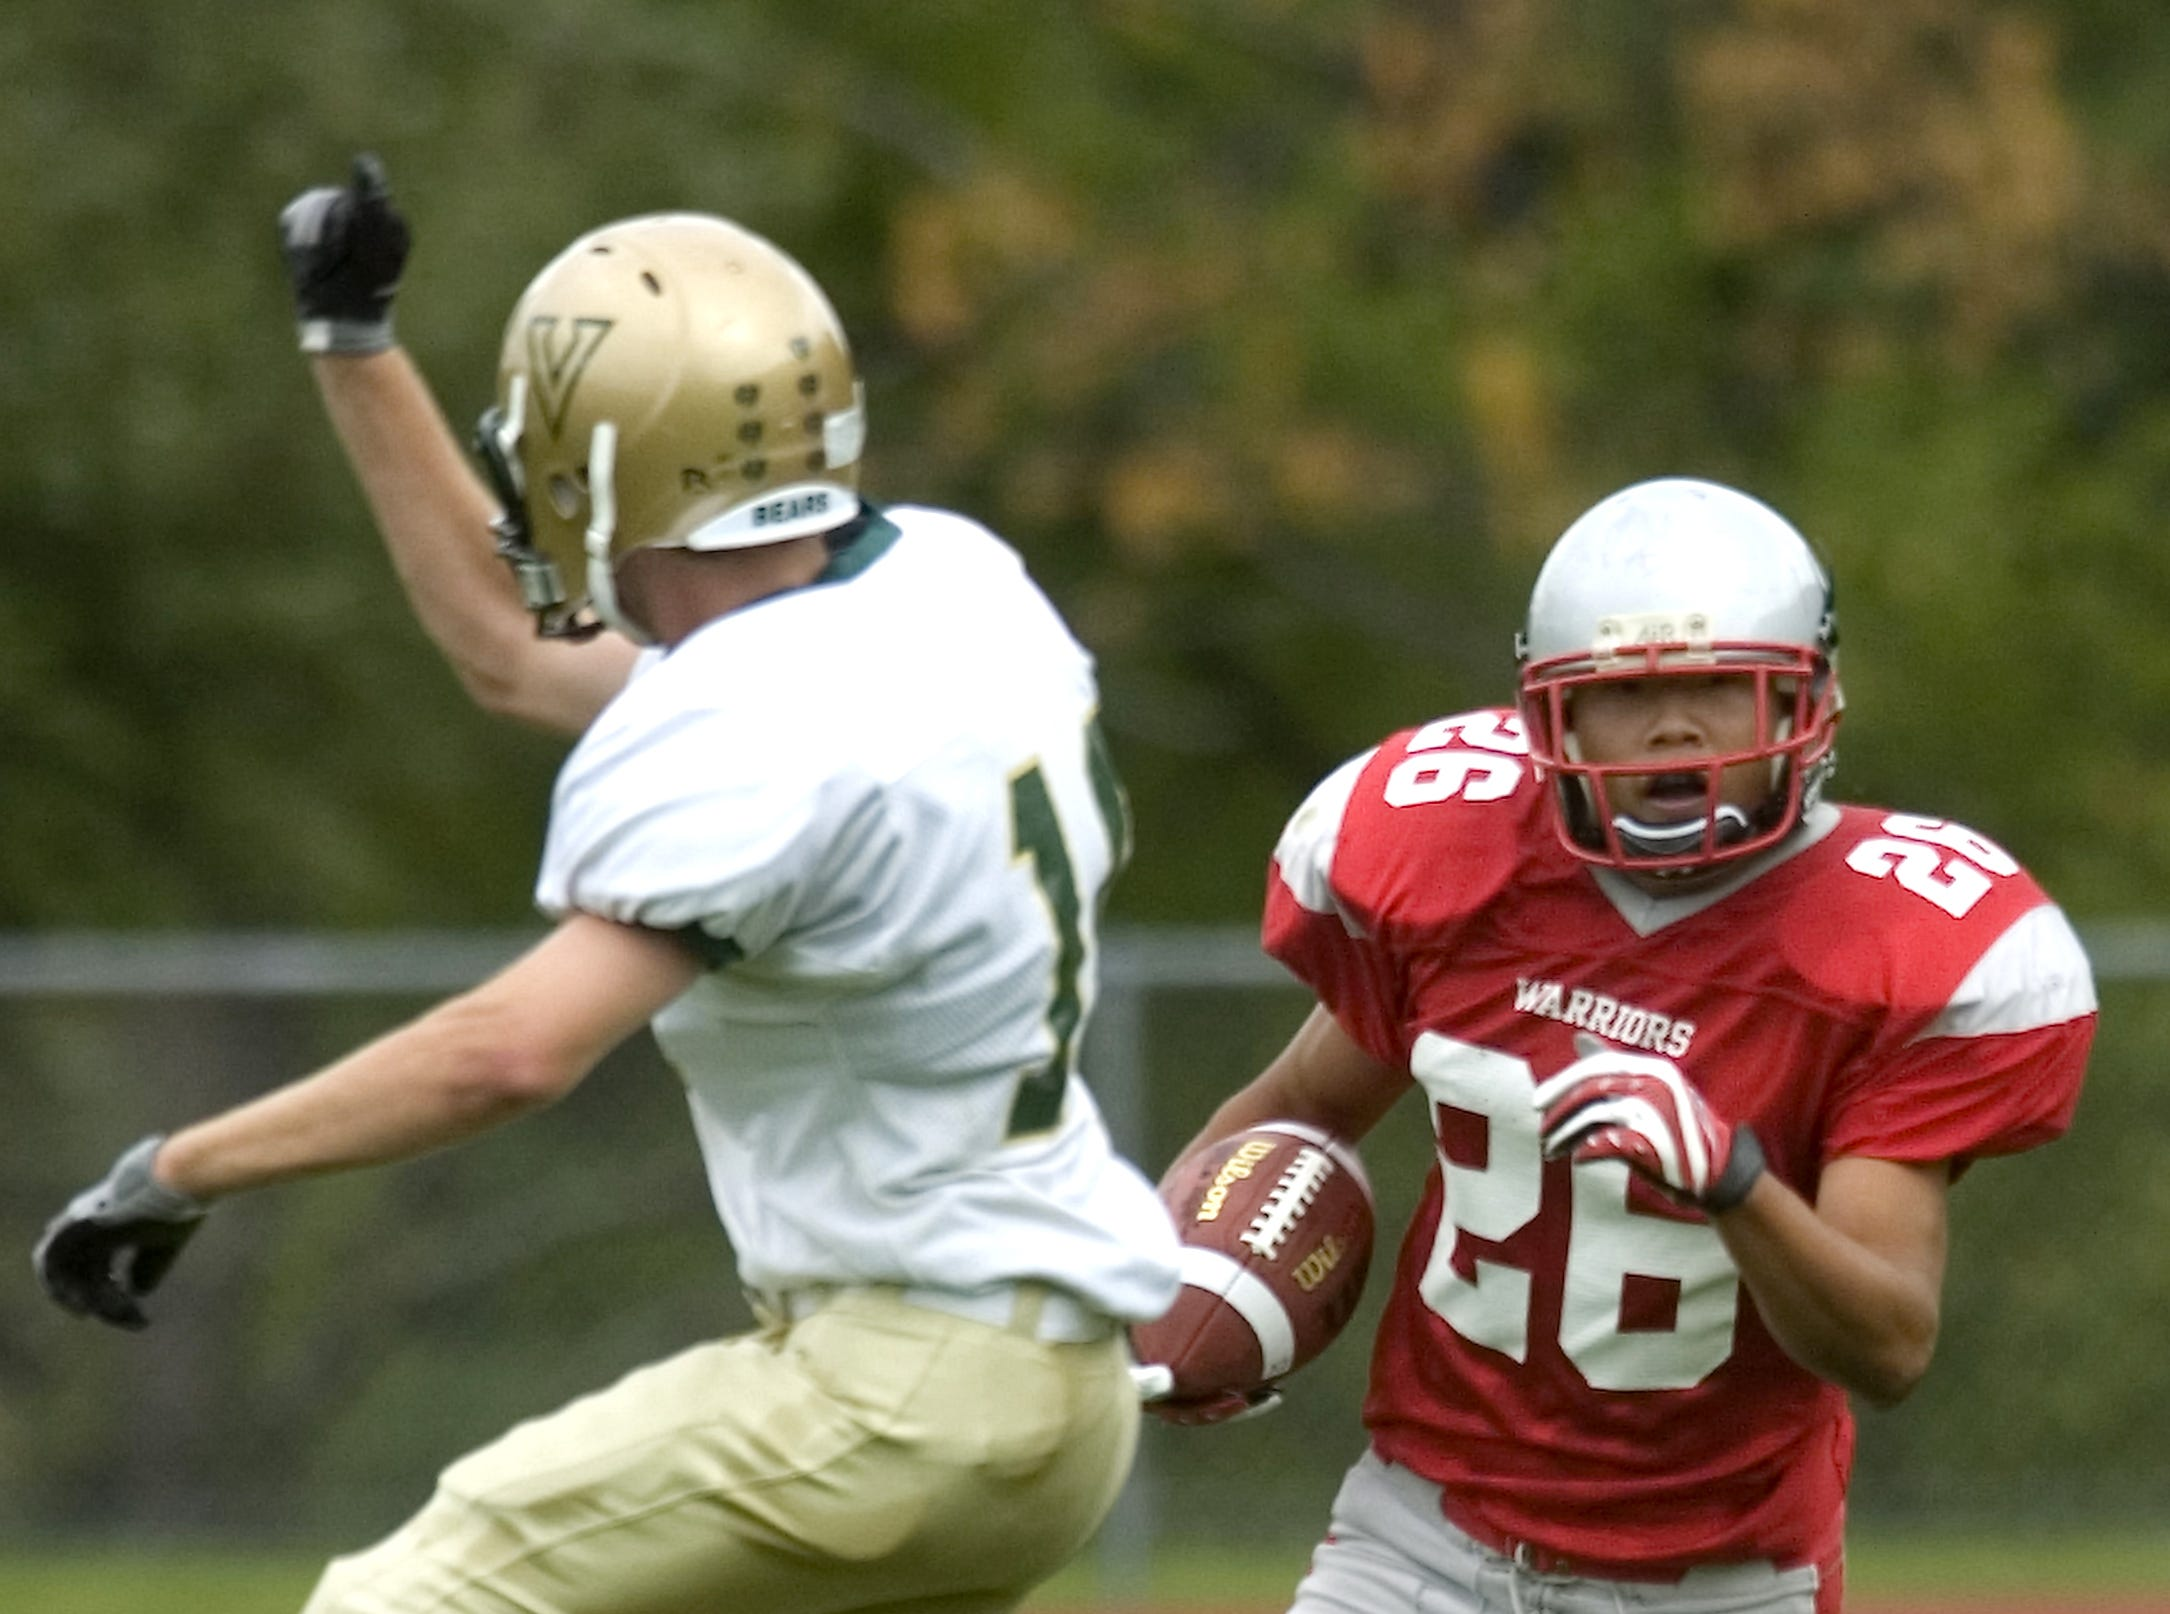 From 2009: Chenango Valley's Devin Carroll, right, works around Vestal's Nick Keeler in the first quarter of Saturday's game at CV.